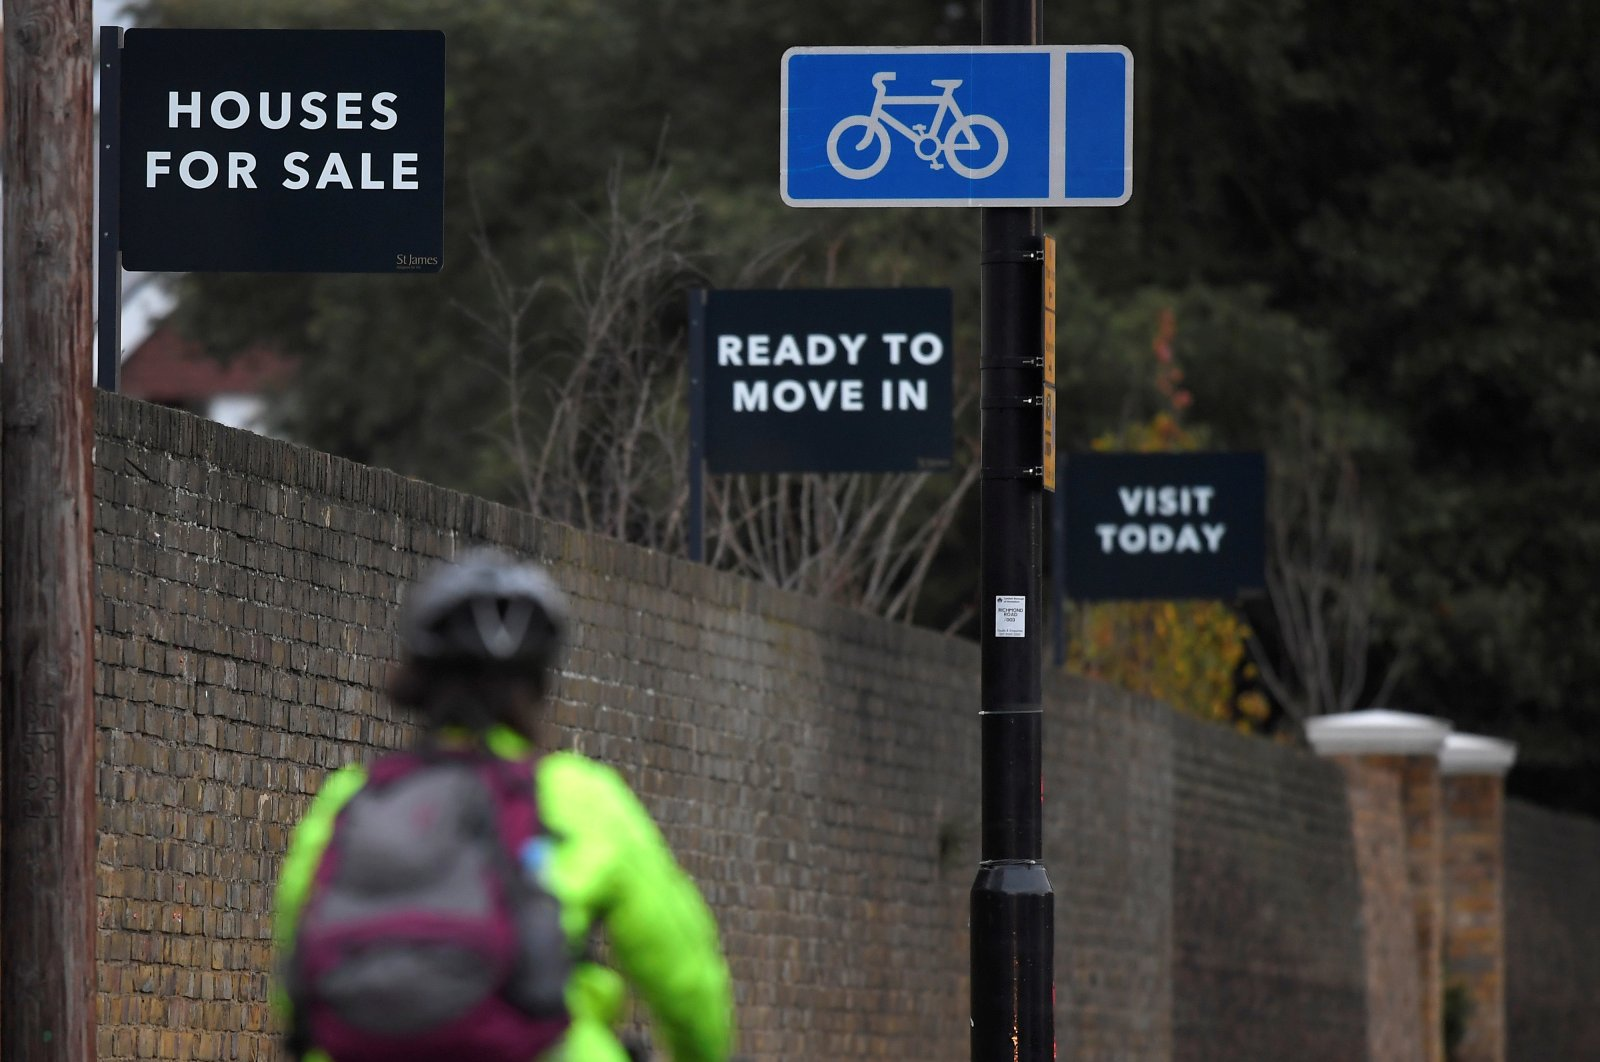 Property sale signs are seen outside of a group of newly built houses in west London, U.K., Nov. 23, 2017. (Reuters Photo)